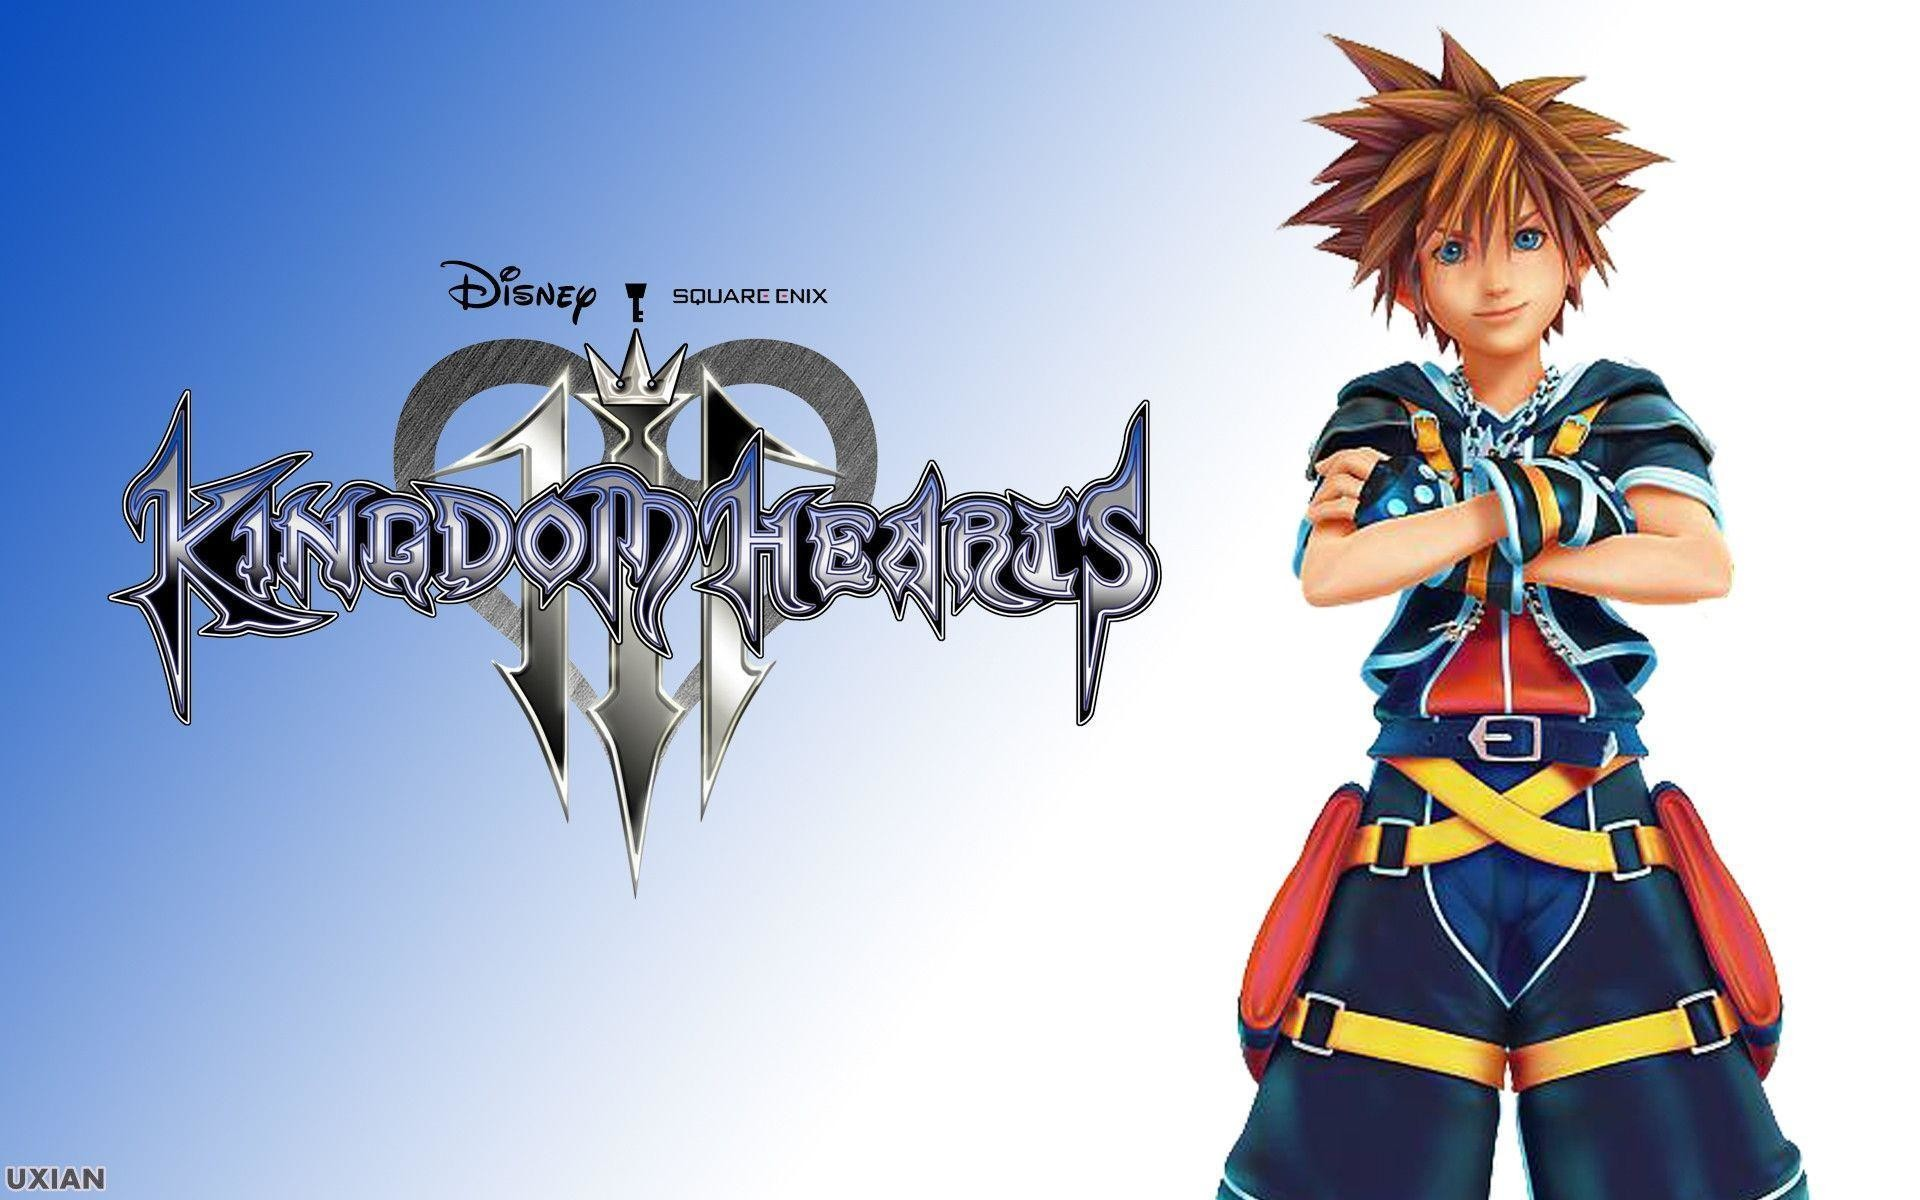 1920x1200 Wallpapers For > Kingdom Hearts 3 Sora Wallpaper